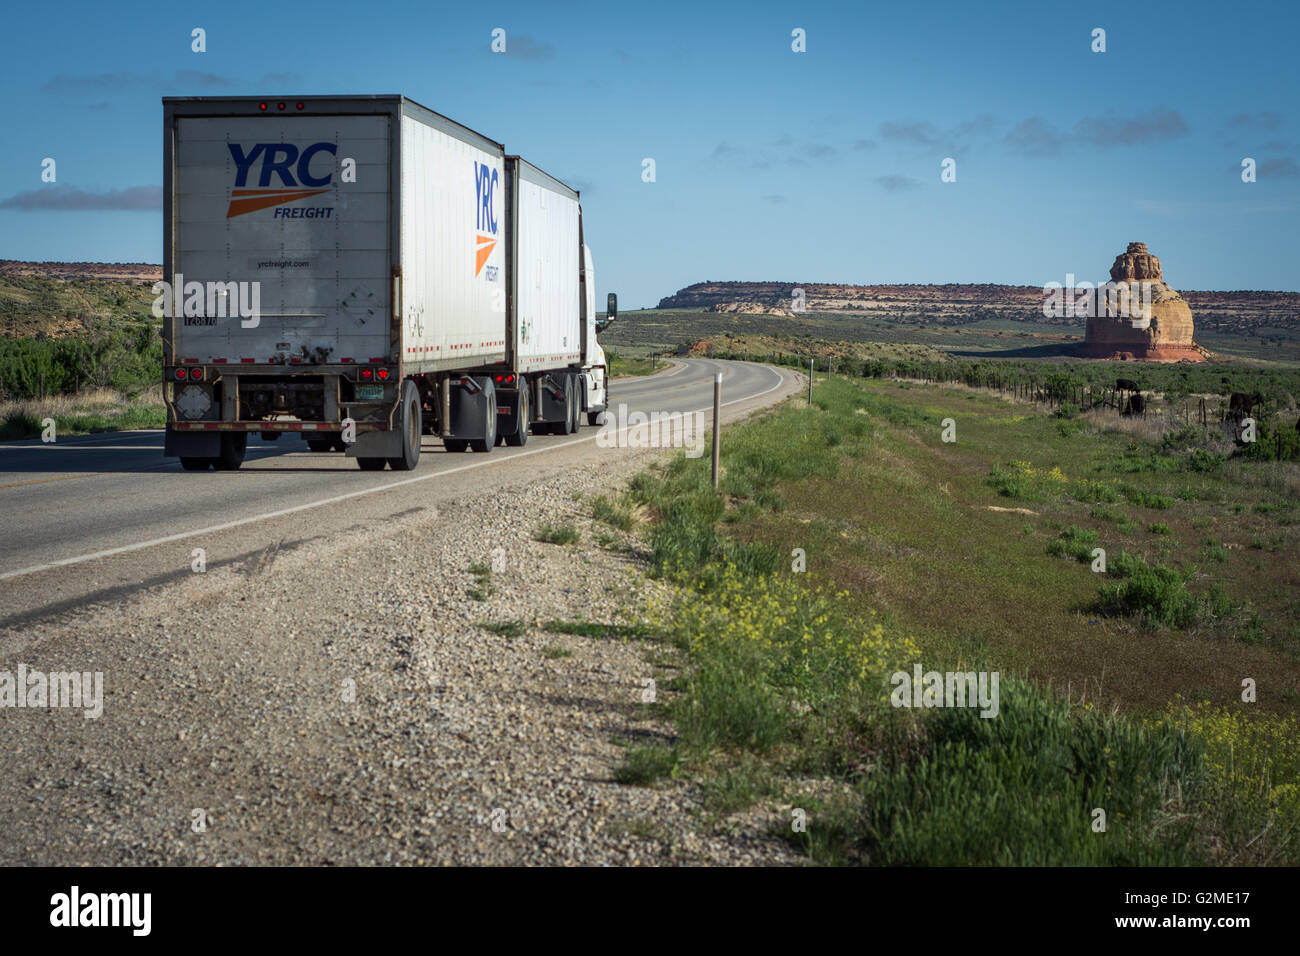 Yrc Freight Stock Photos & Yrc Freight Stock Images - Alamy